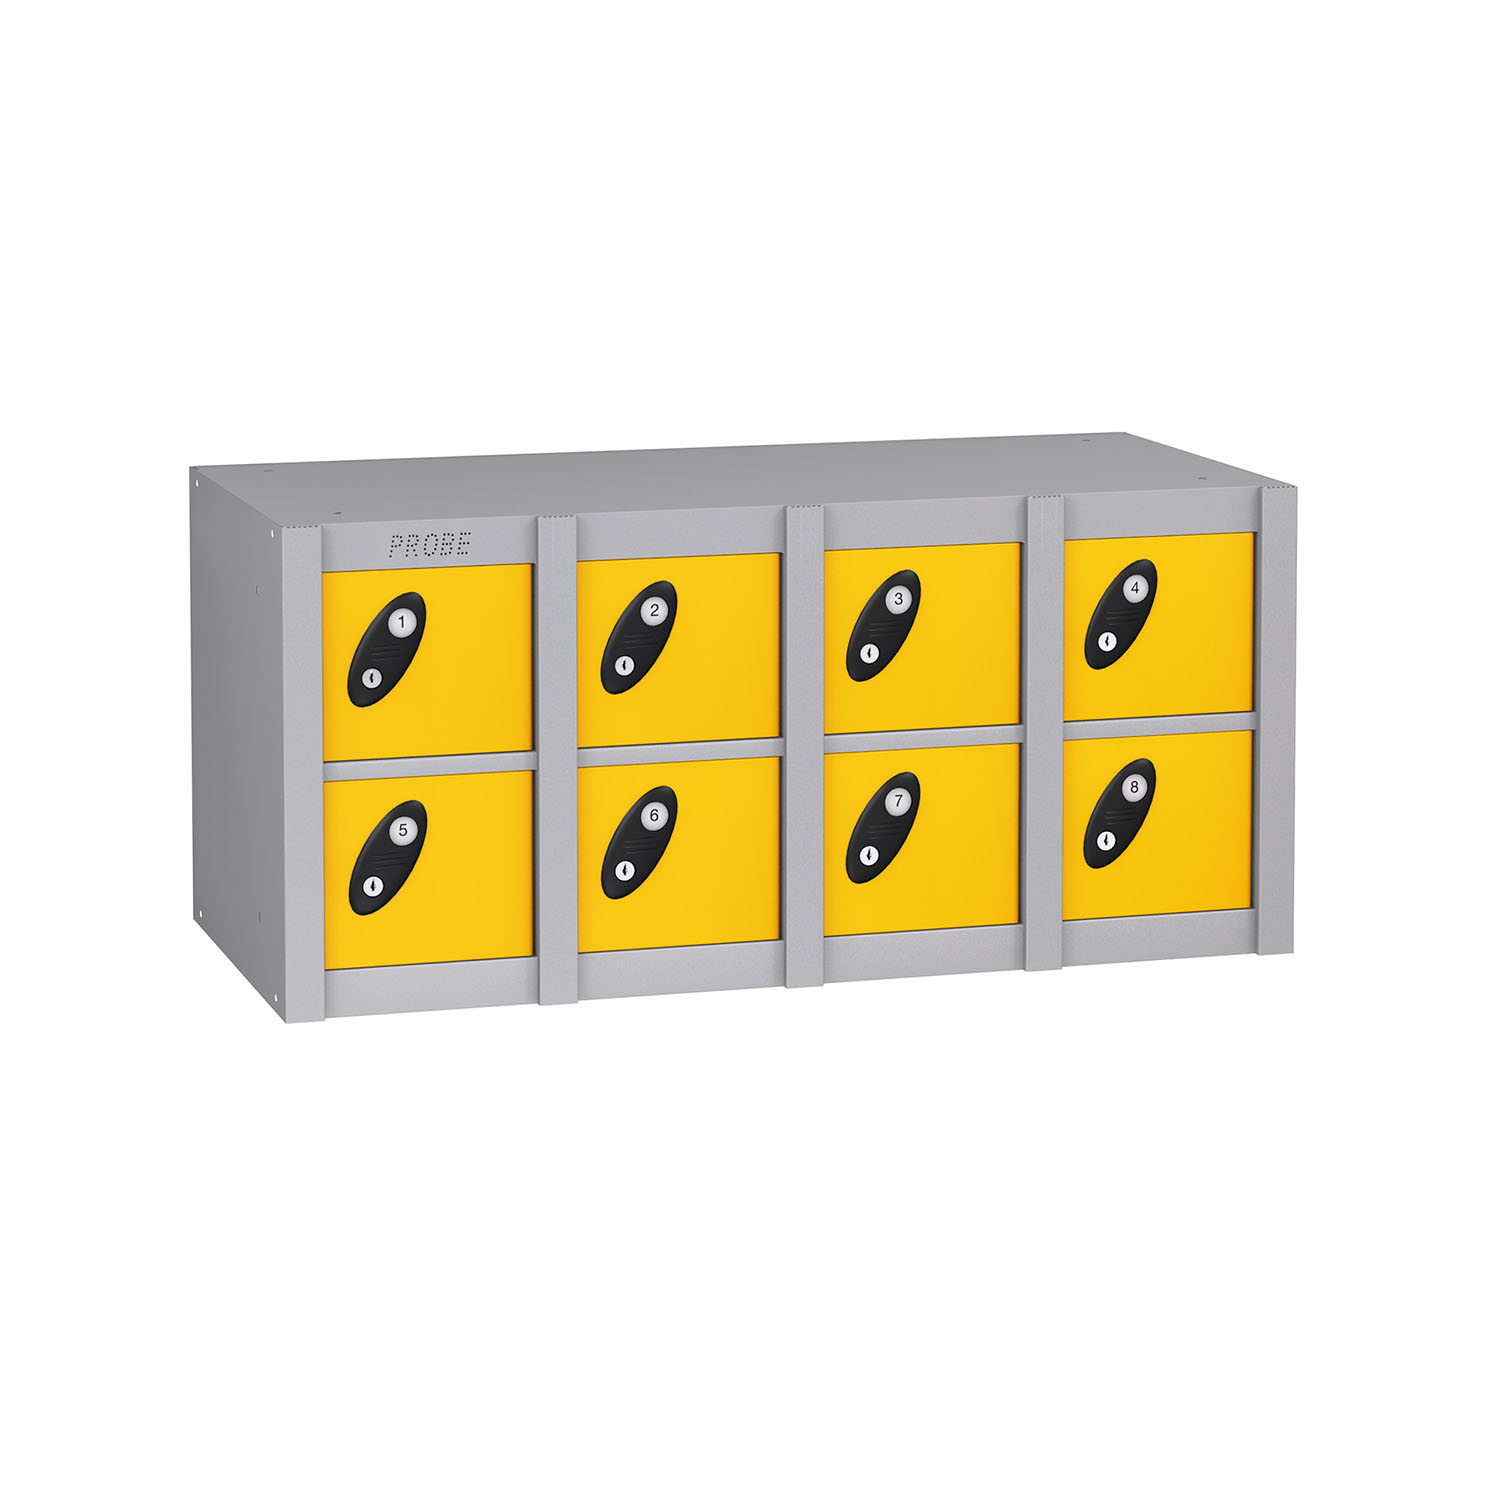 Probe 8 doors minibox lockers in yellow colour